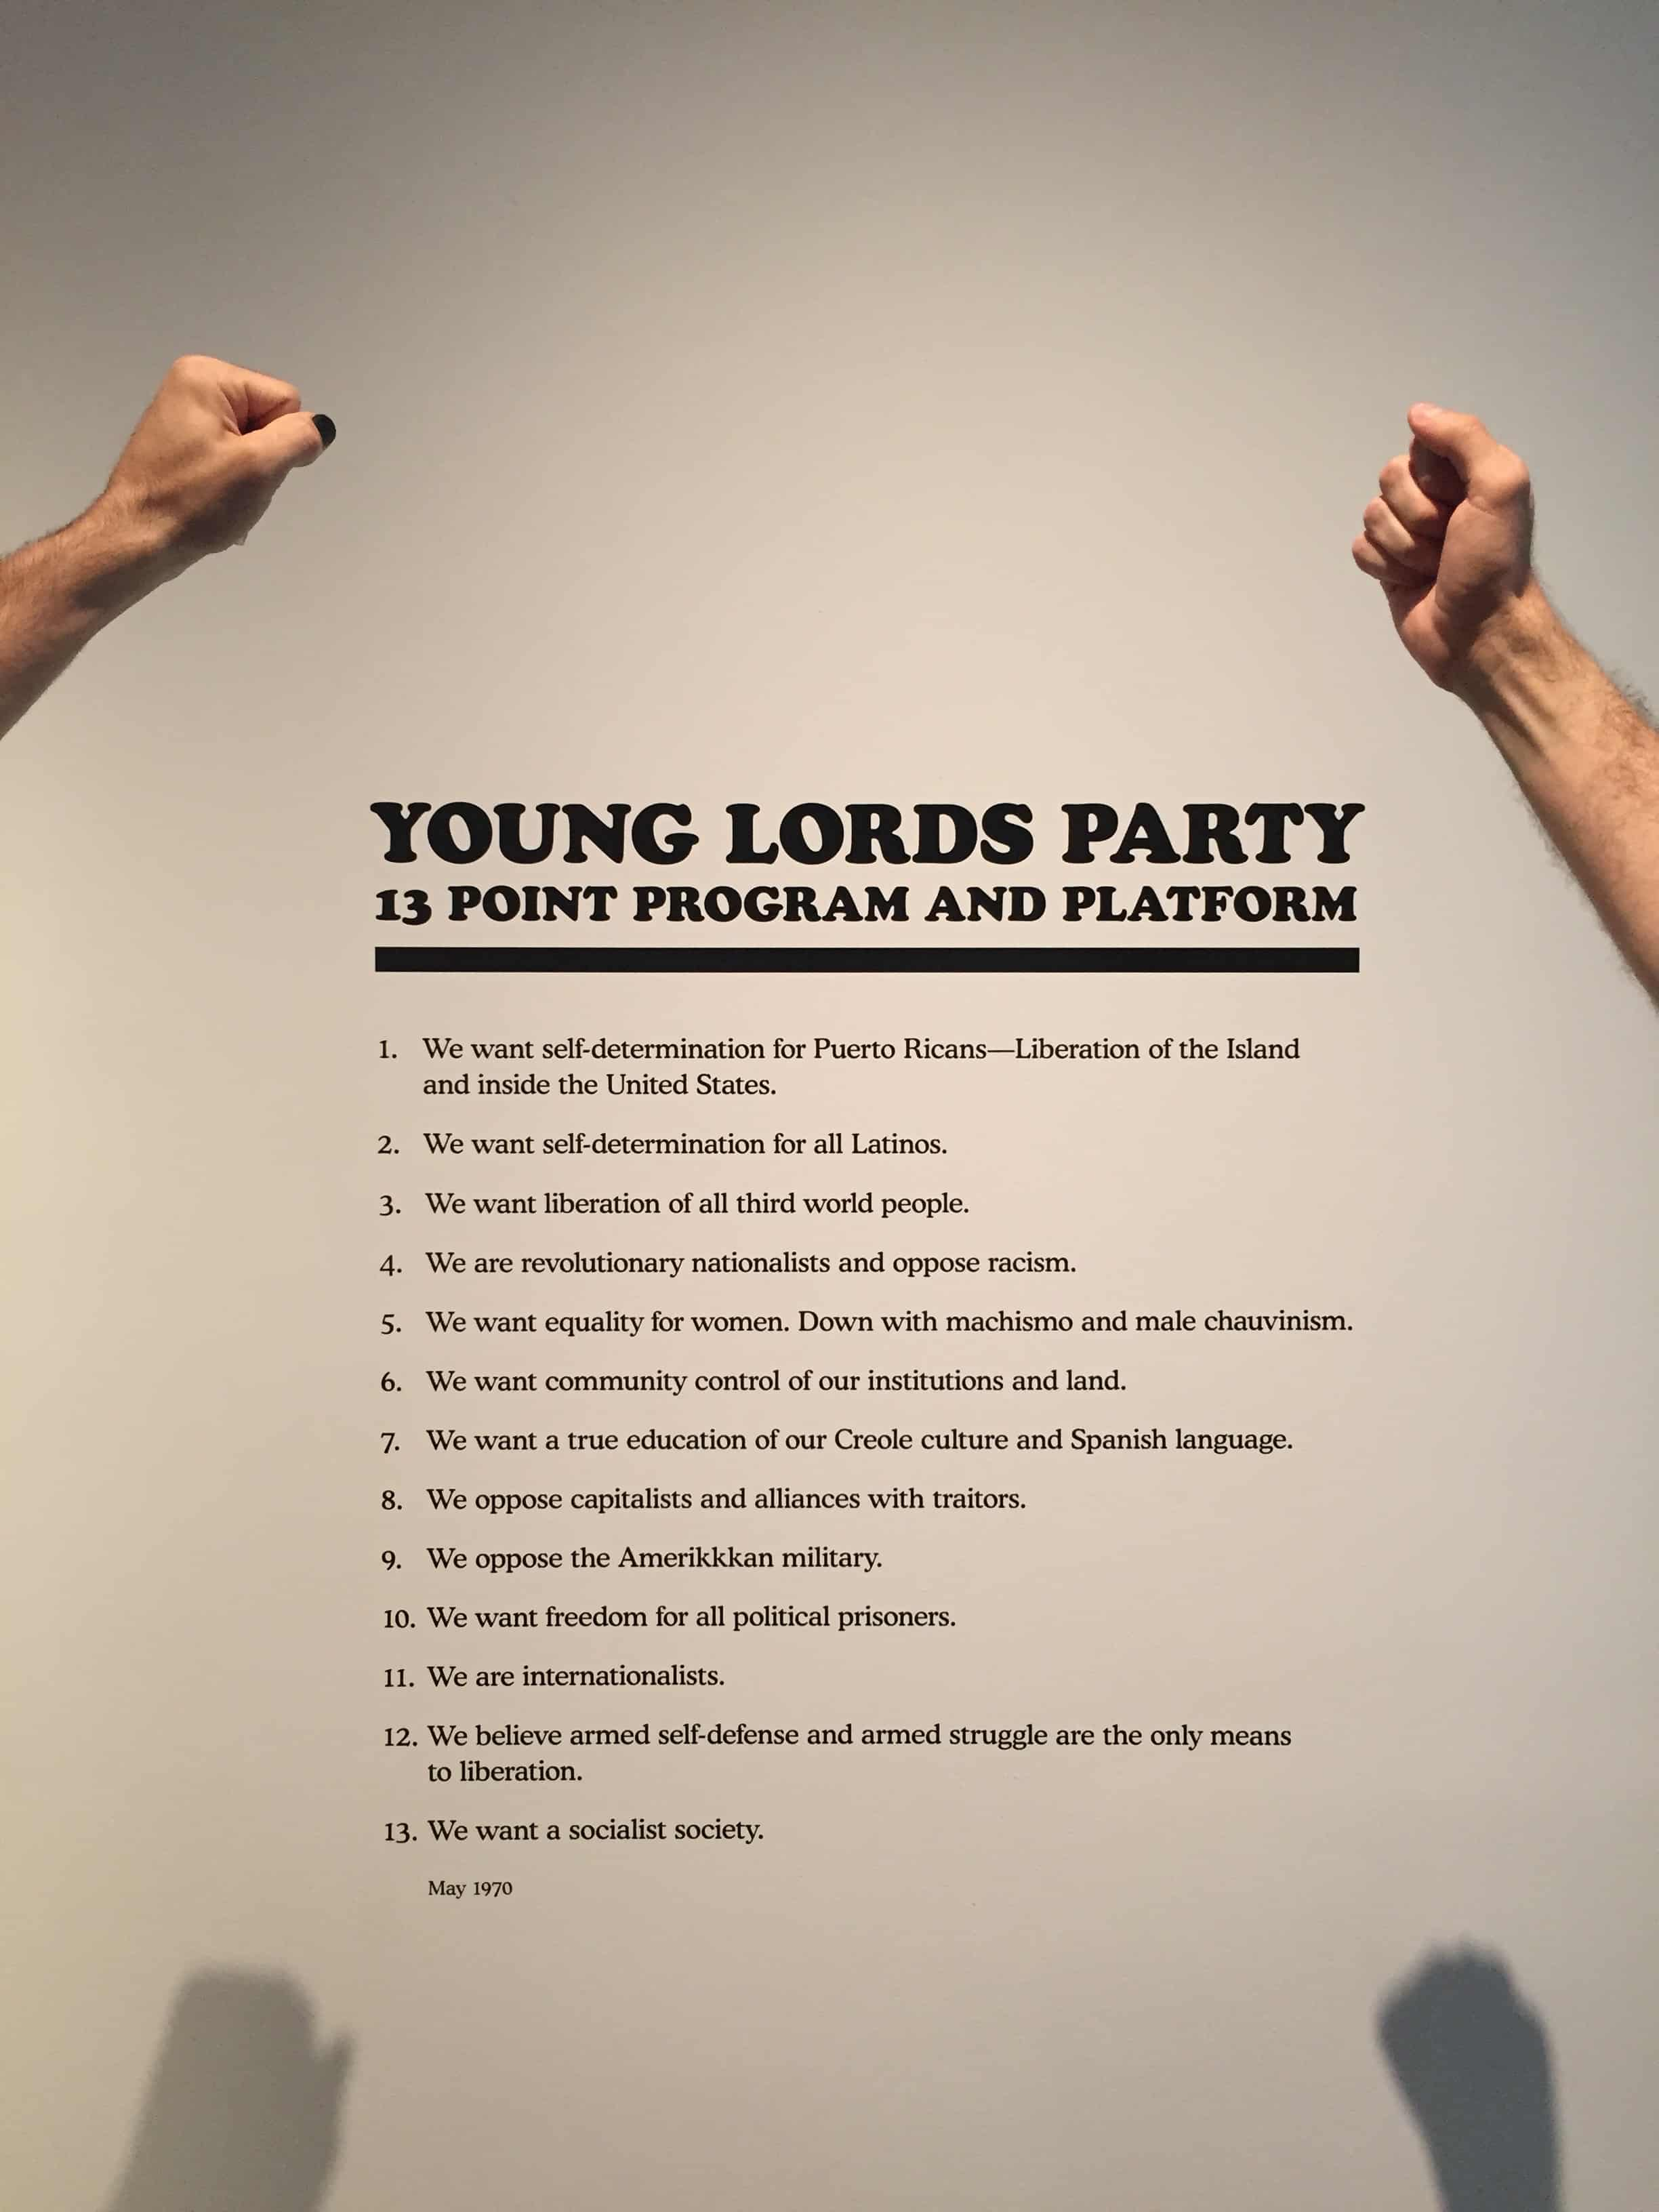 Young Lords Party 13 Point Program and Platform -- Photo by Camilo